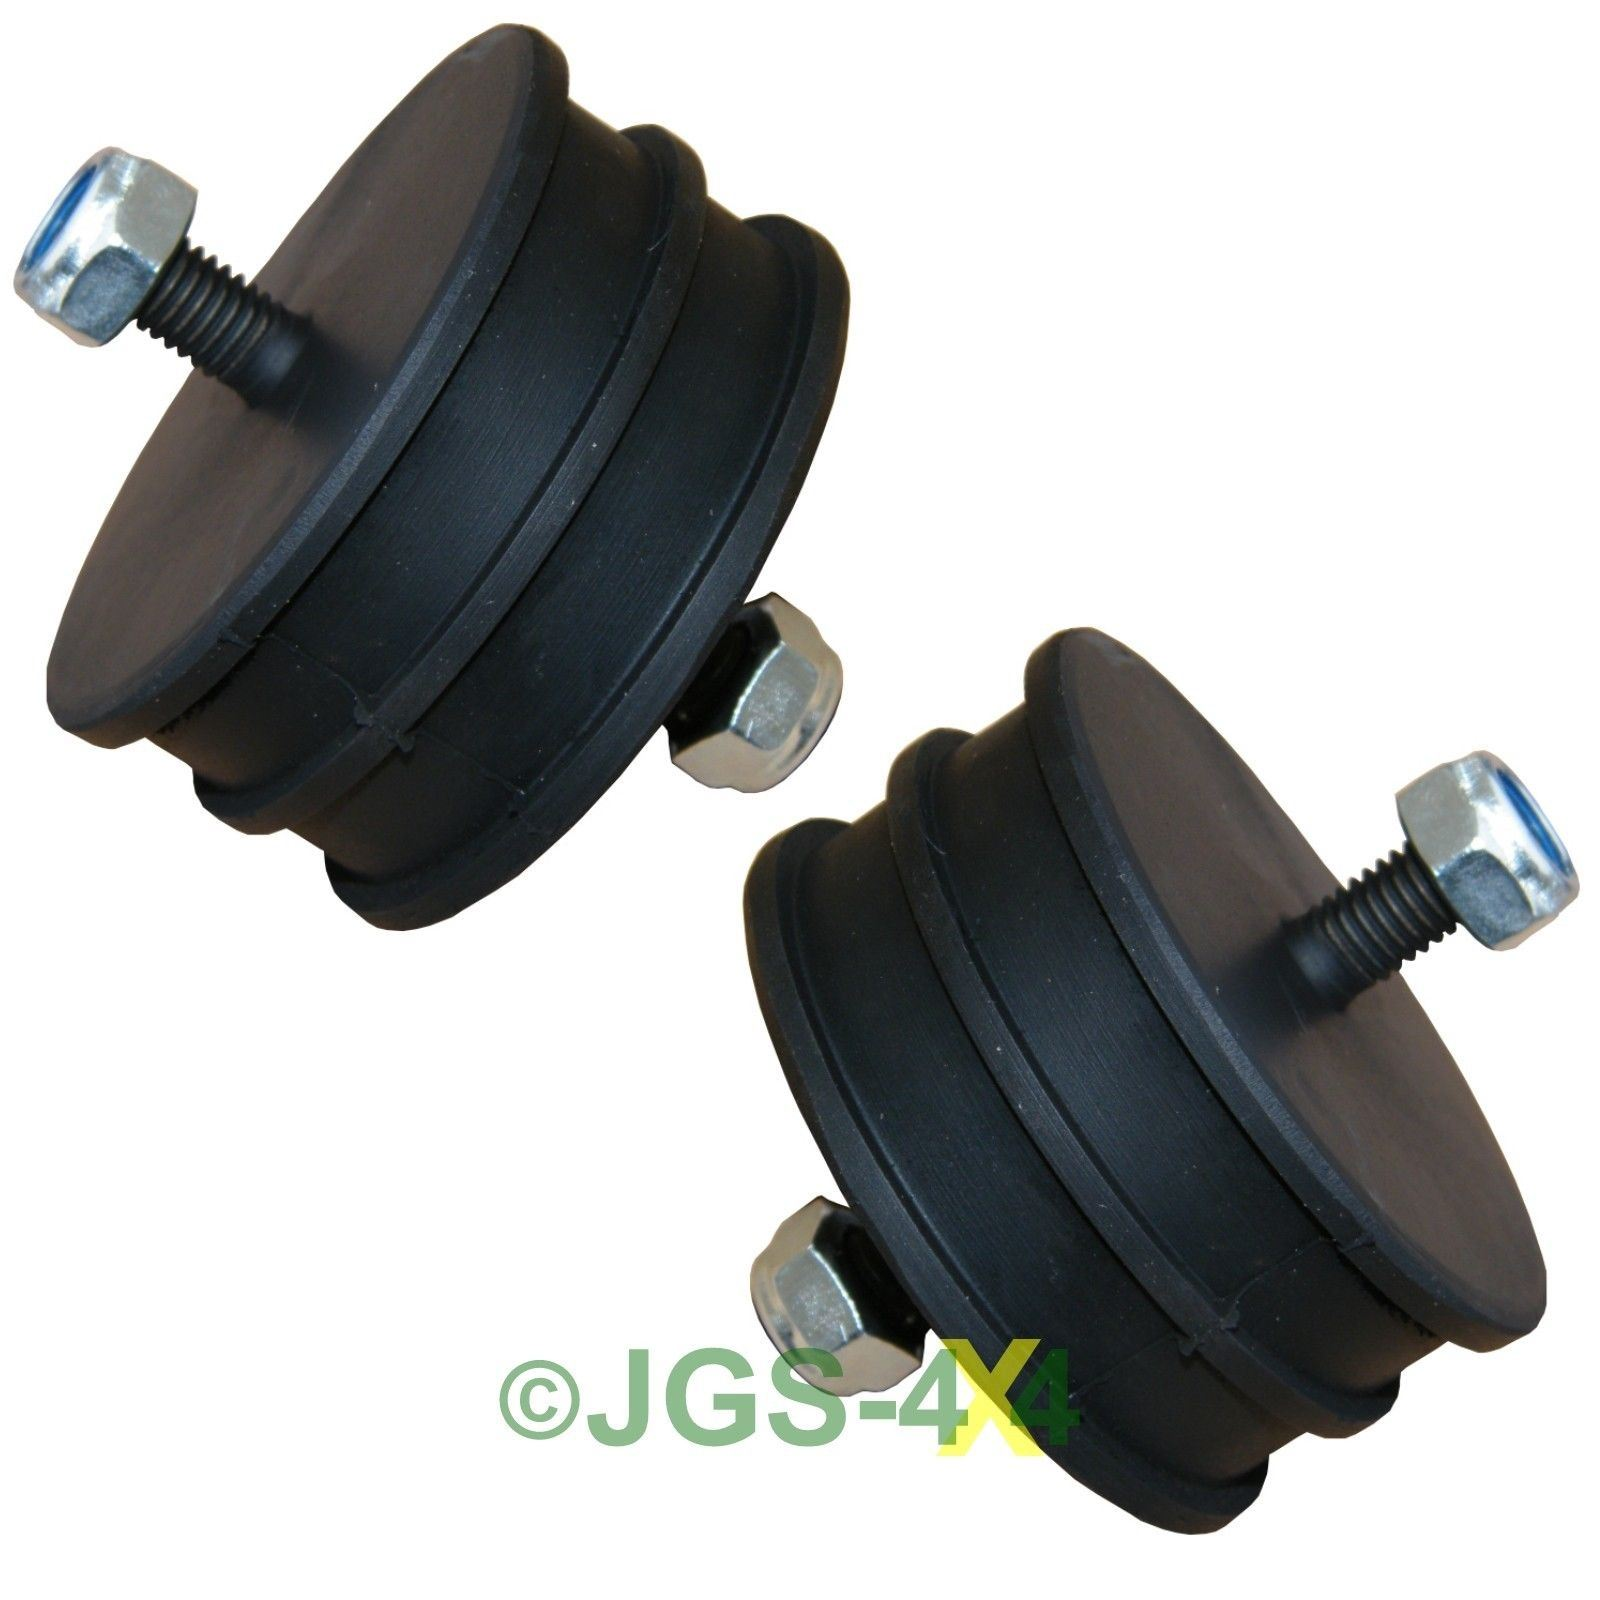 Land rover defender 90 110 engine mount mounting rubber x2 for Motor mount repair estimate